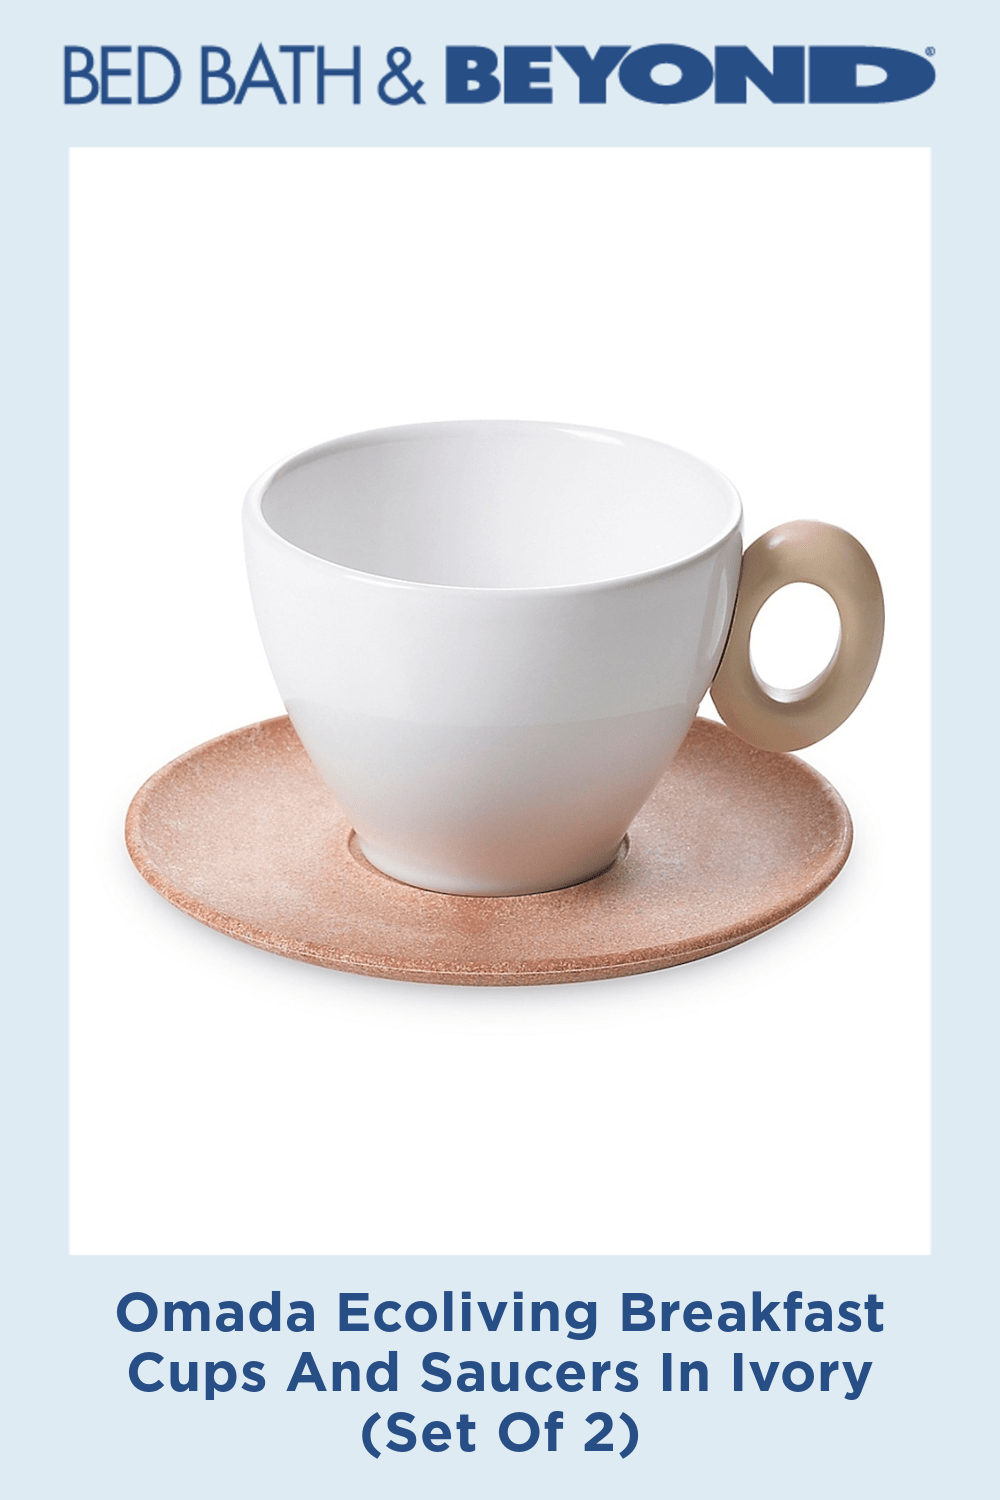 Omada Ecoliving Breakfast Cups And Saucers In Ivory (Set Of 2)